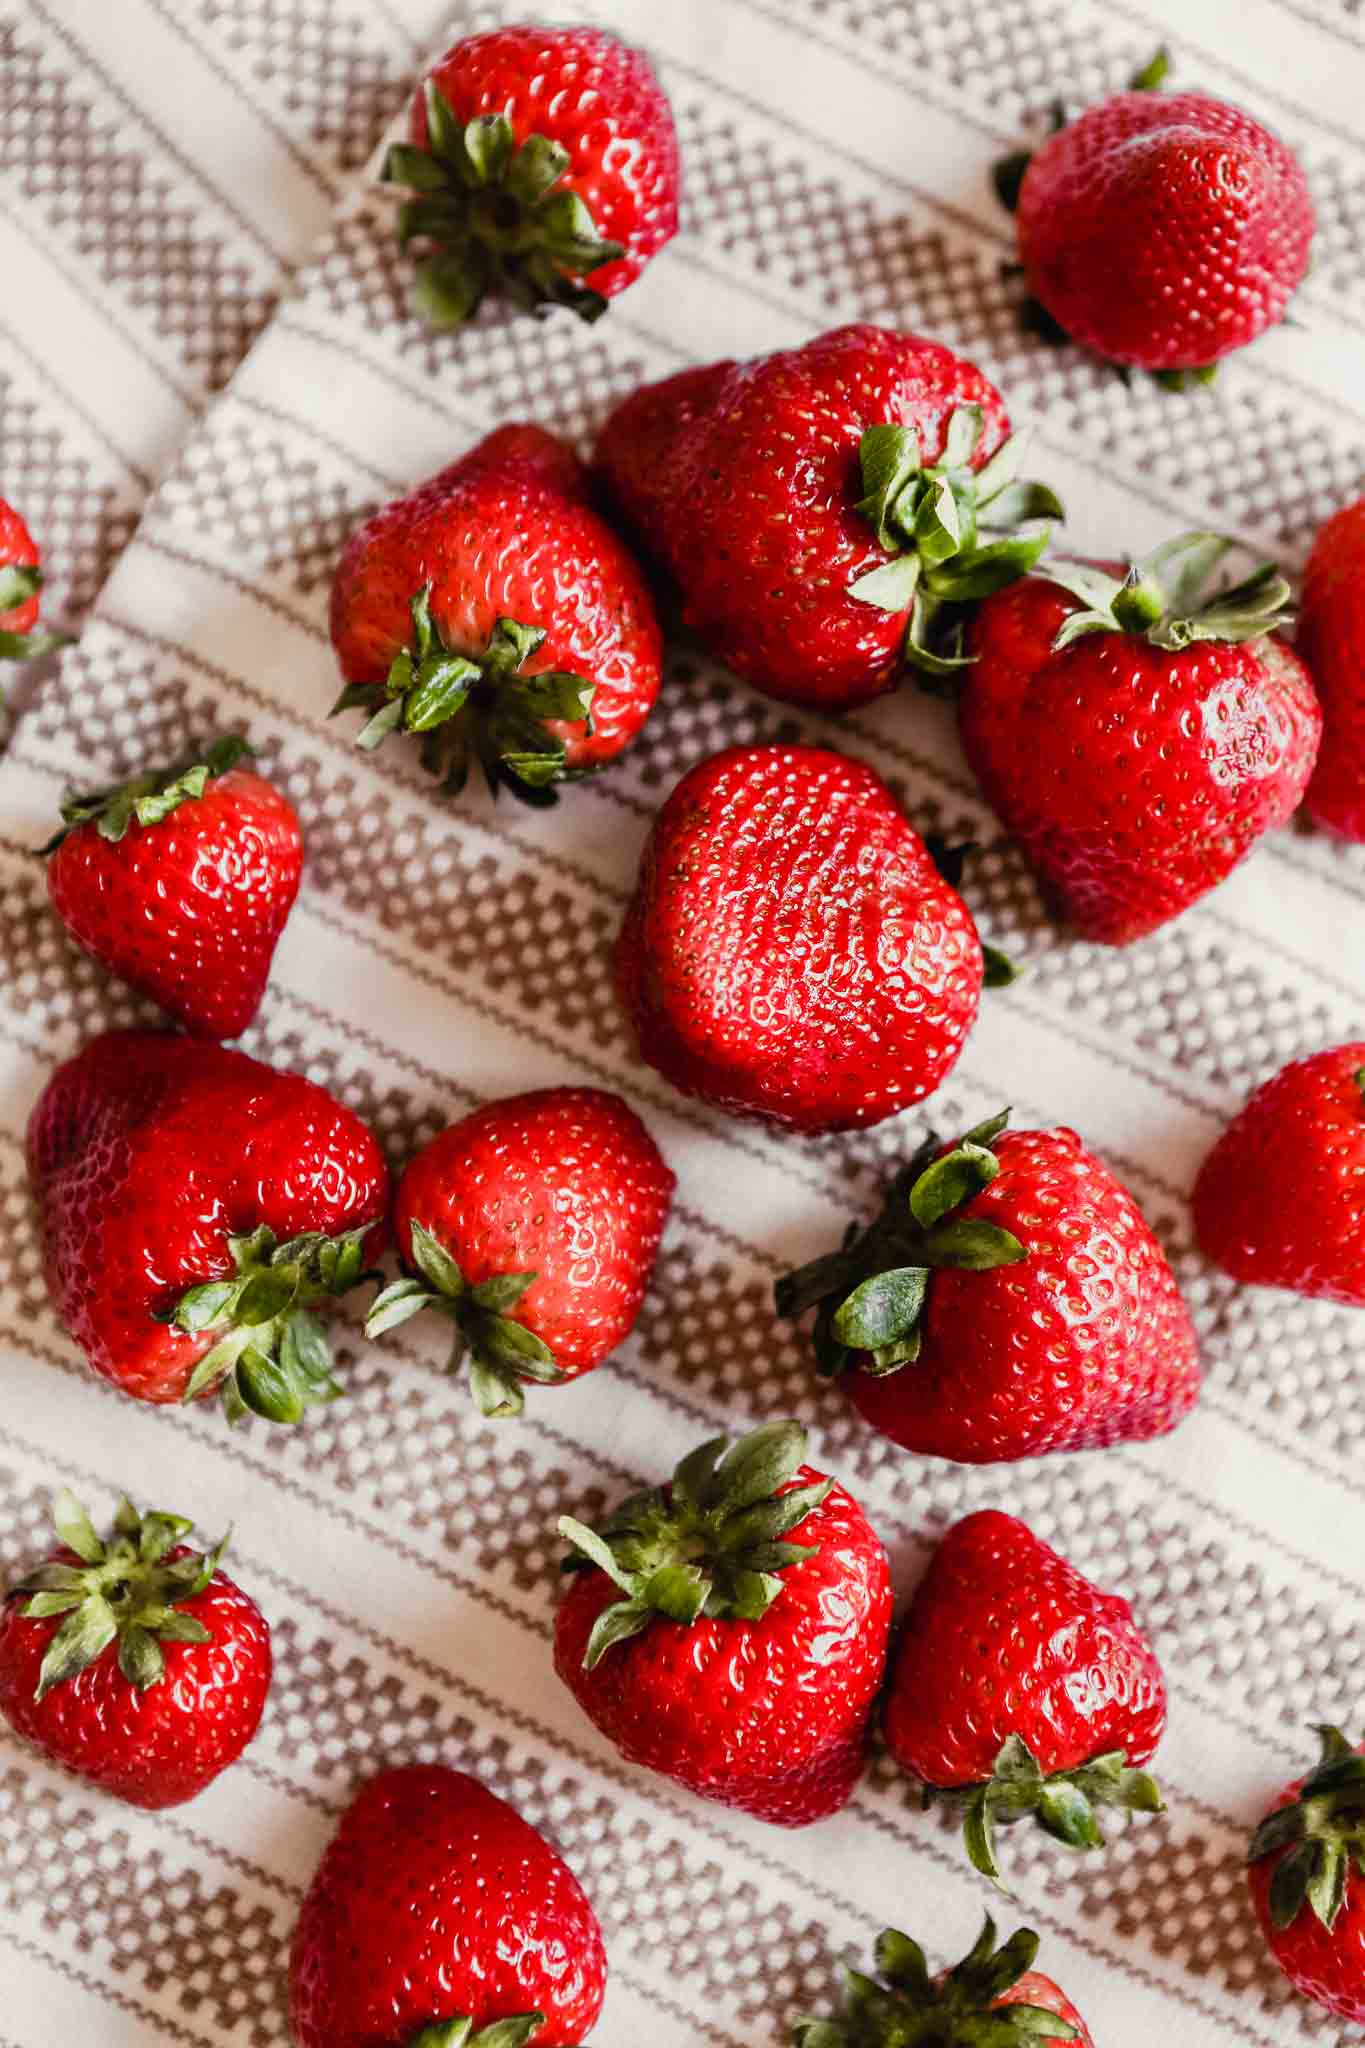 Photograph of fresh strawberries drying on a kitchen towel